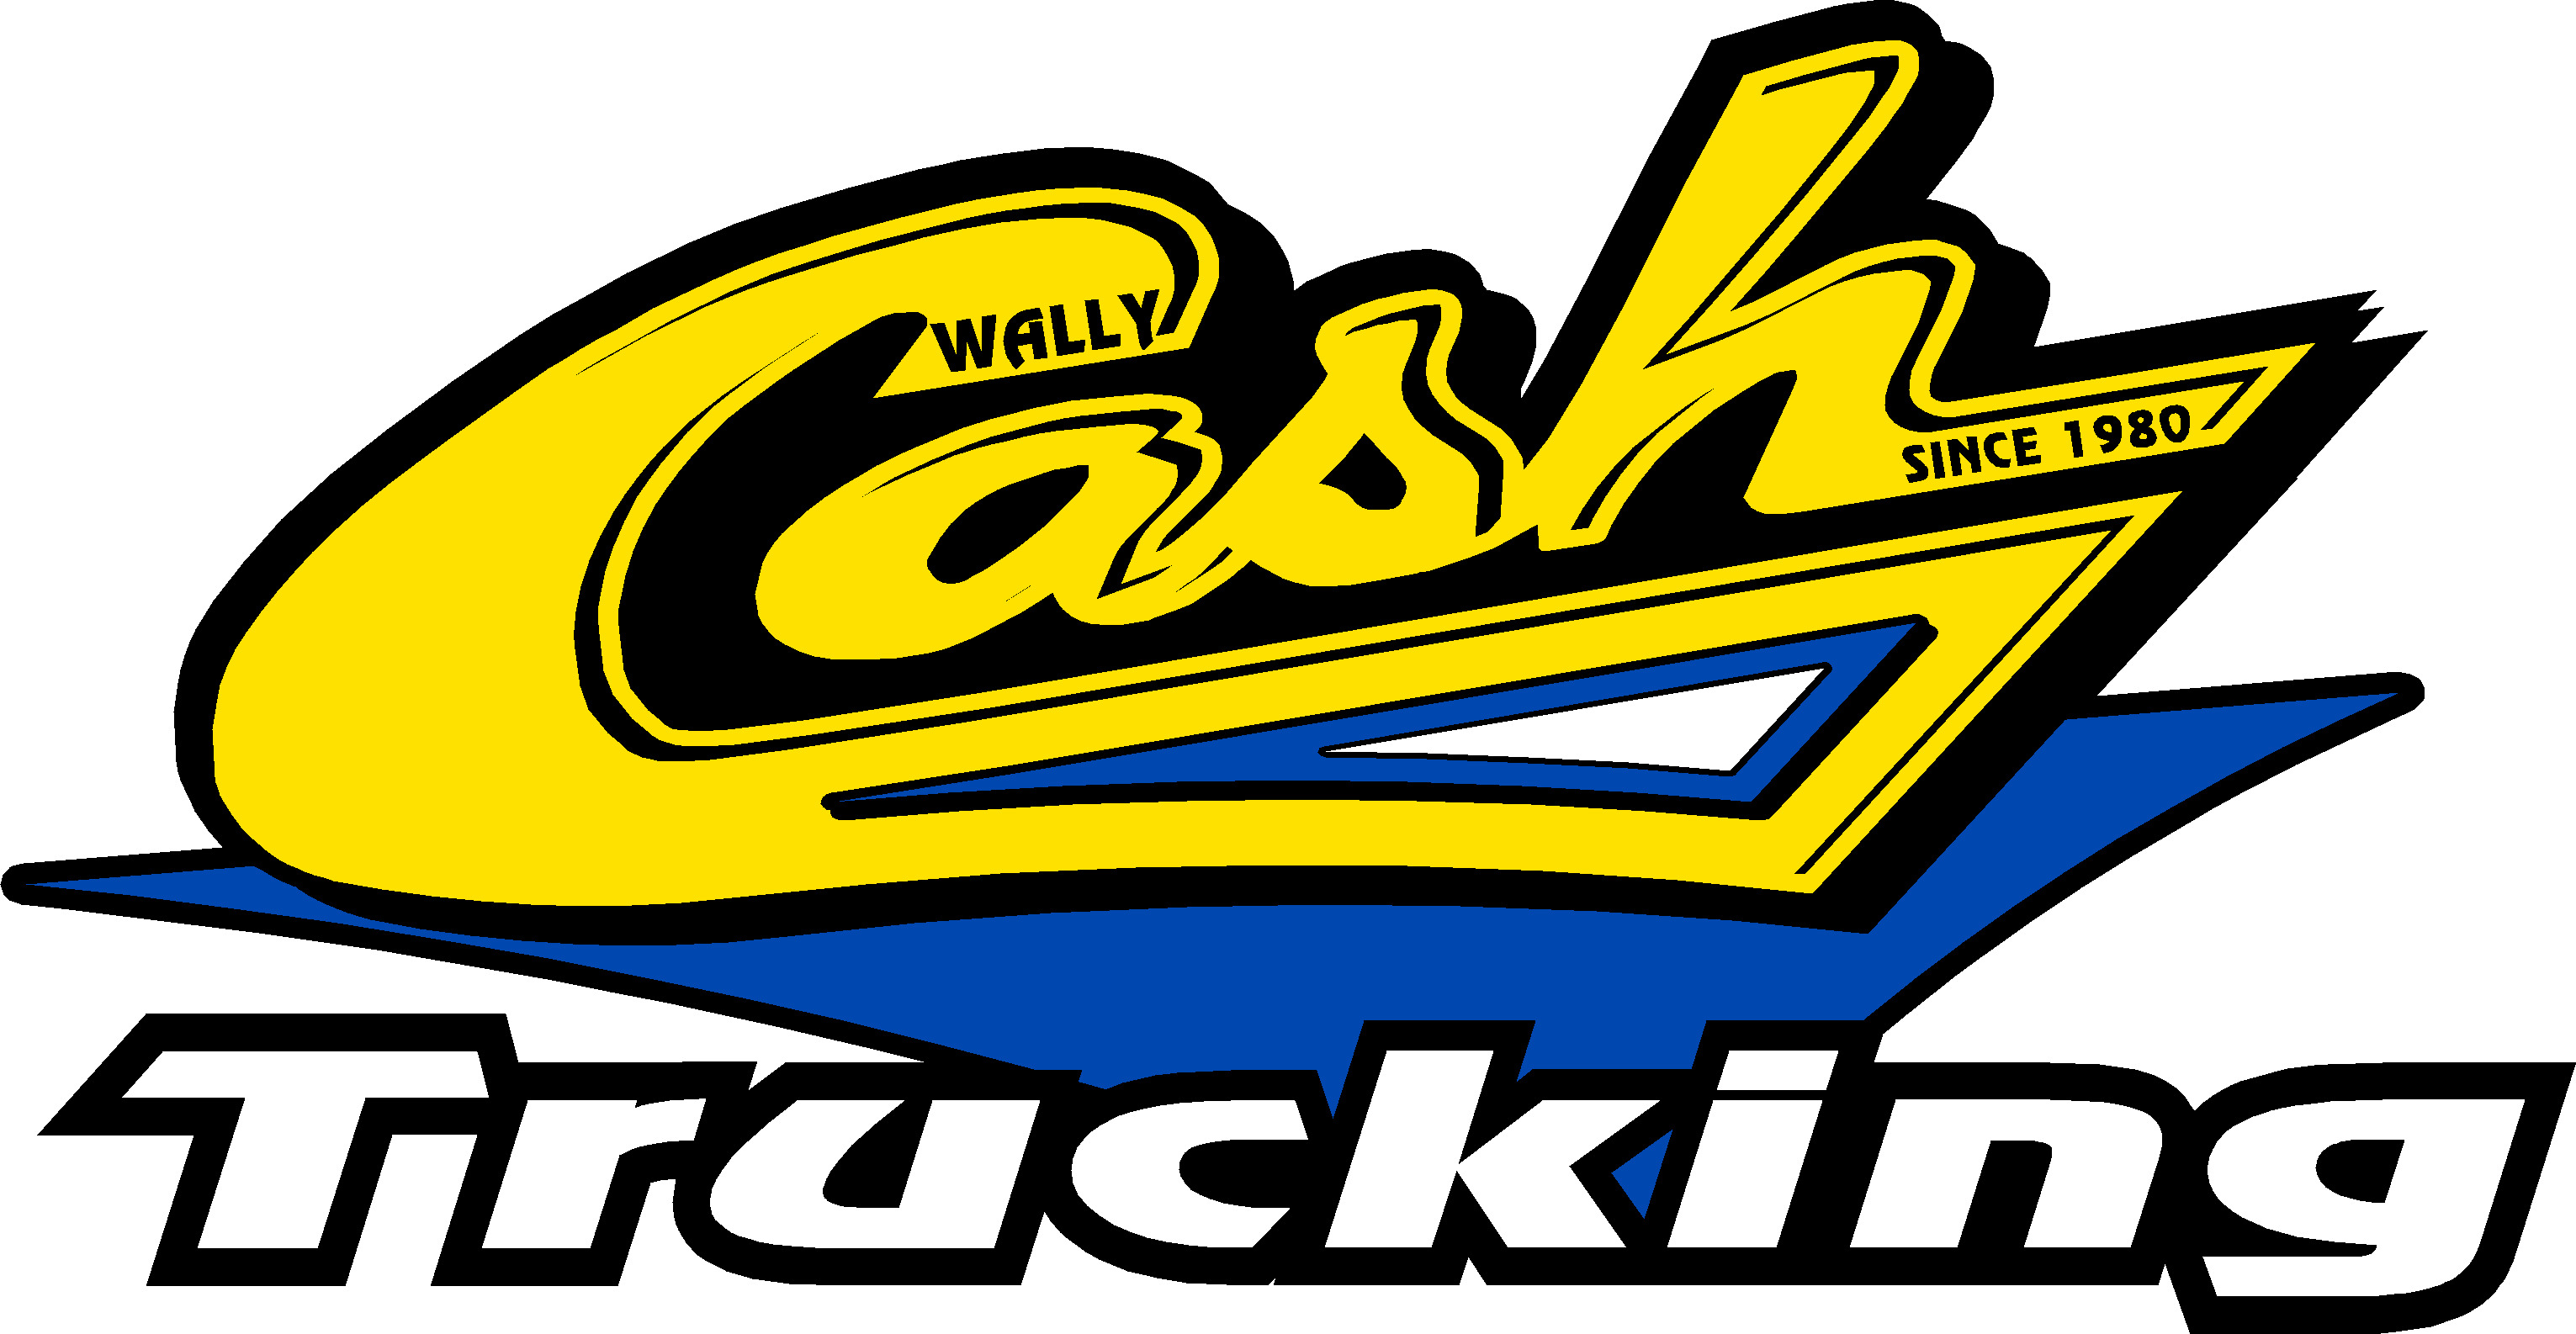 OTR Drivers HOME WEEKLY No Touch Freight - Fort Worth, TX - Wally Cash Trucking, Inc.